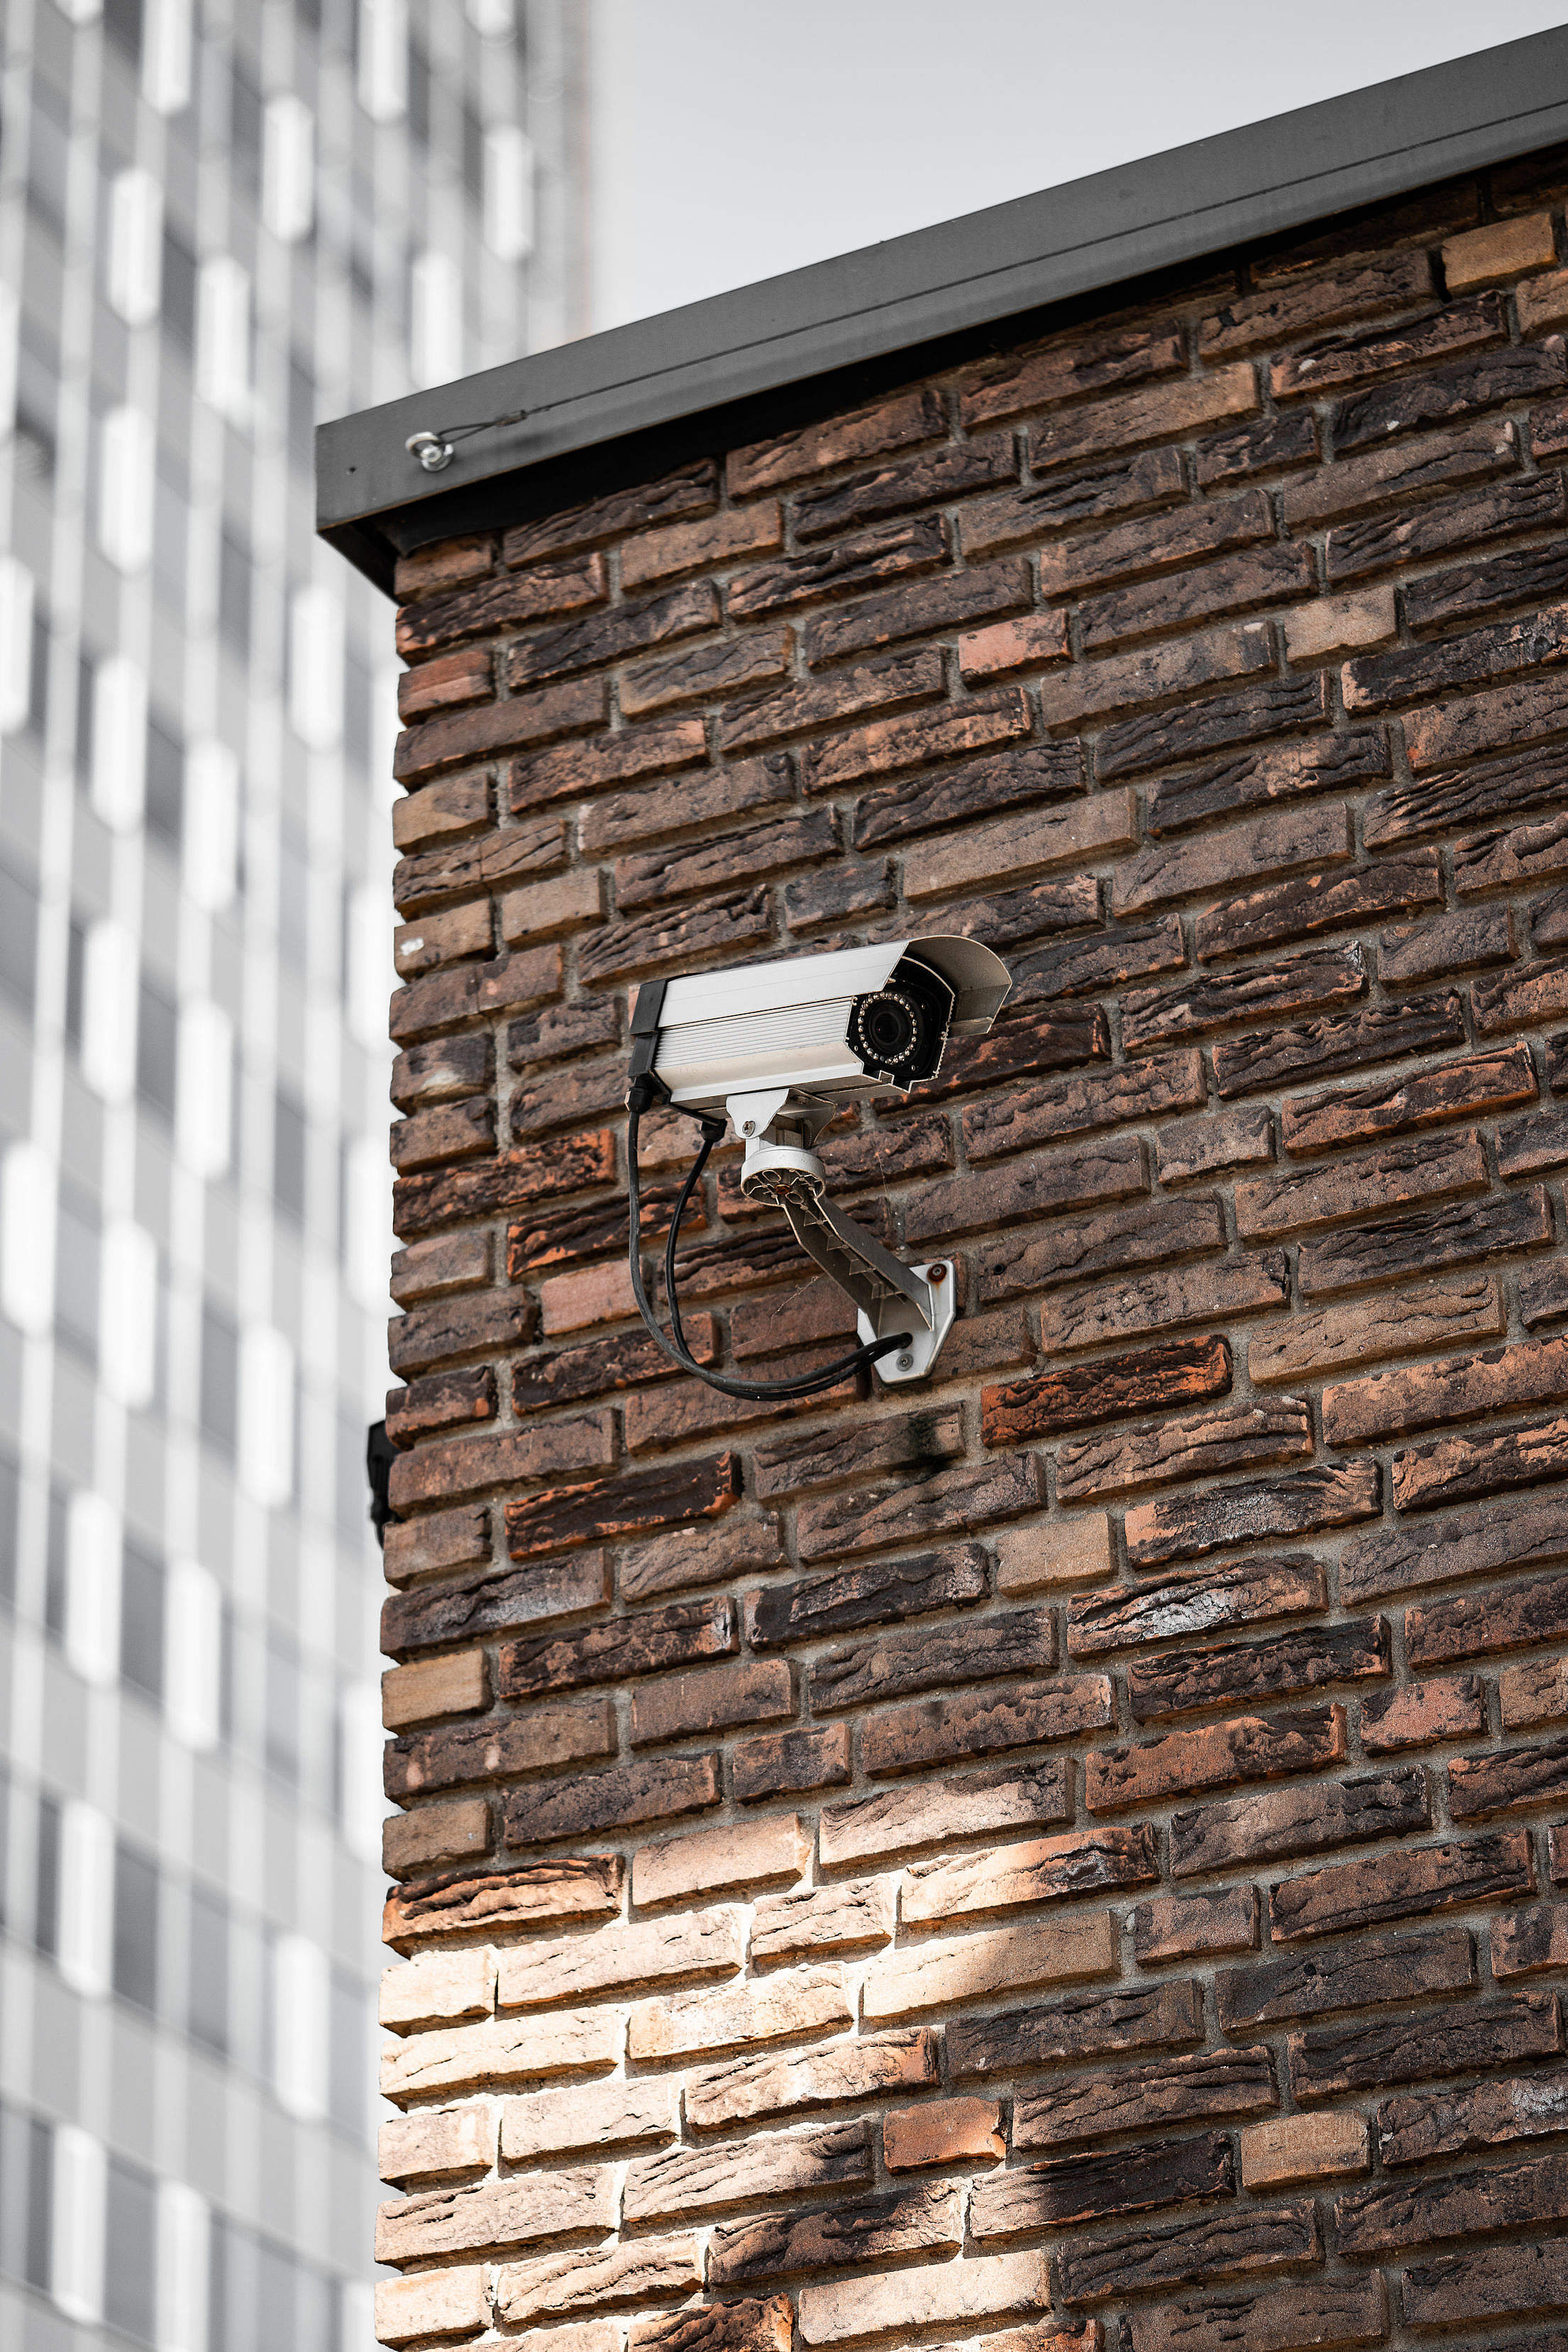 Download Surveillance Camera Vertical Free Stock Photo